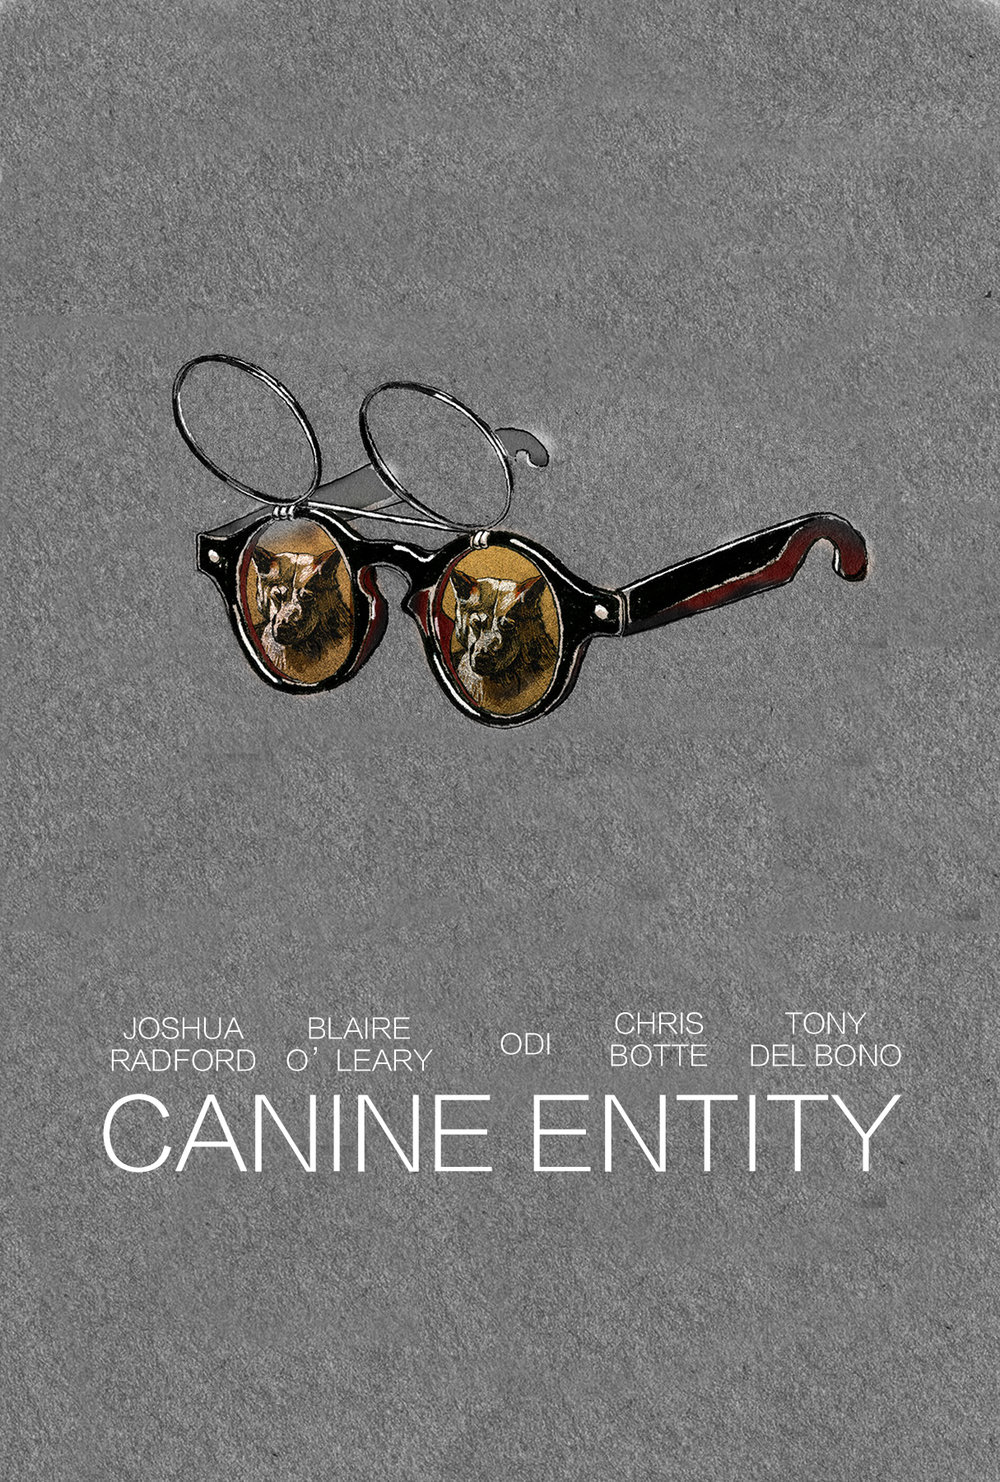 CANINE ENTITY - Starring Joshua Radford.Written by Sharon Levy and Tobias Belliard